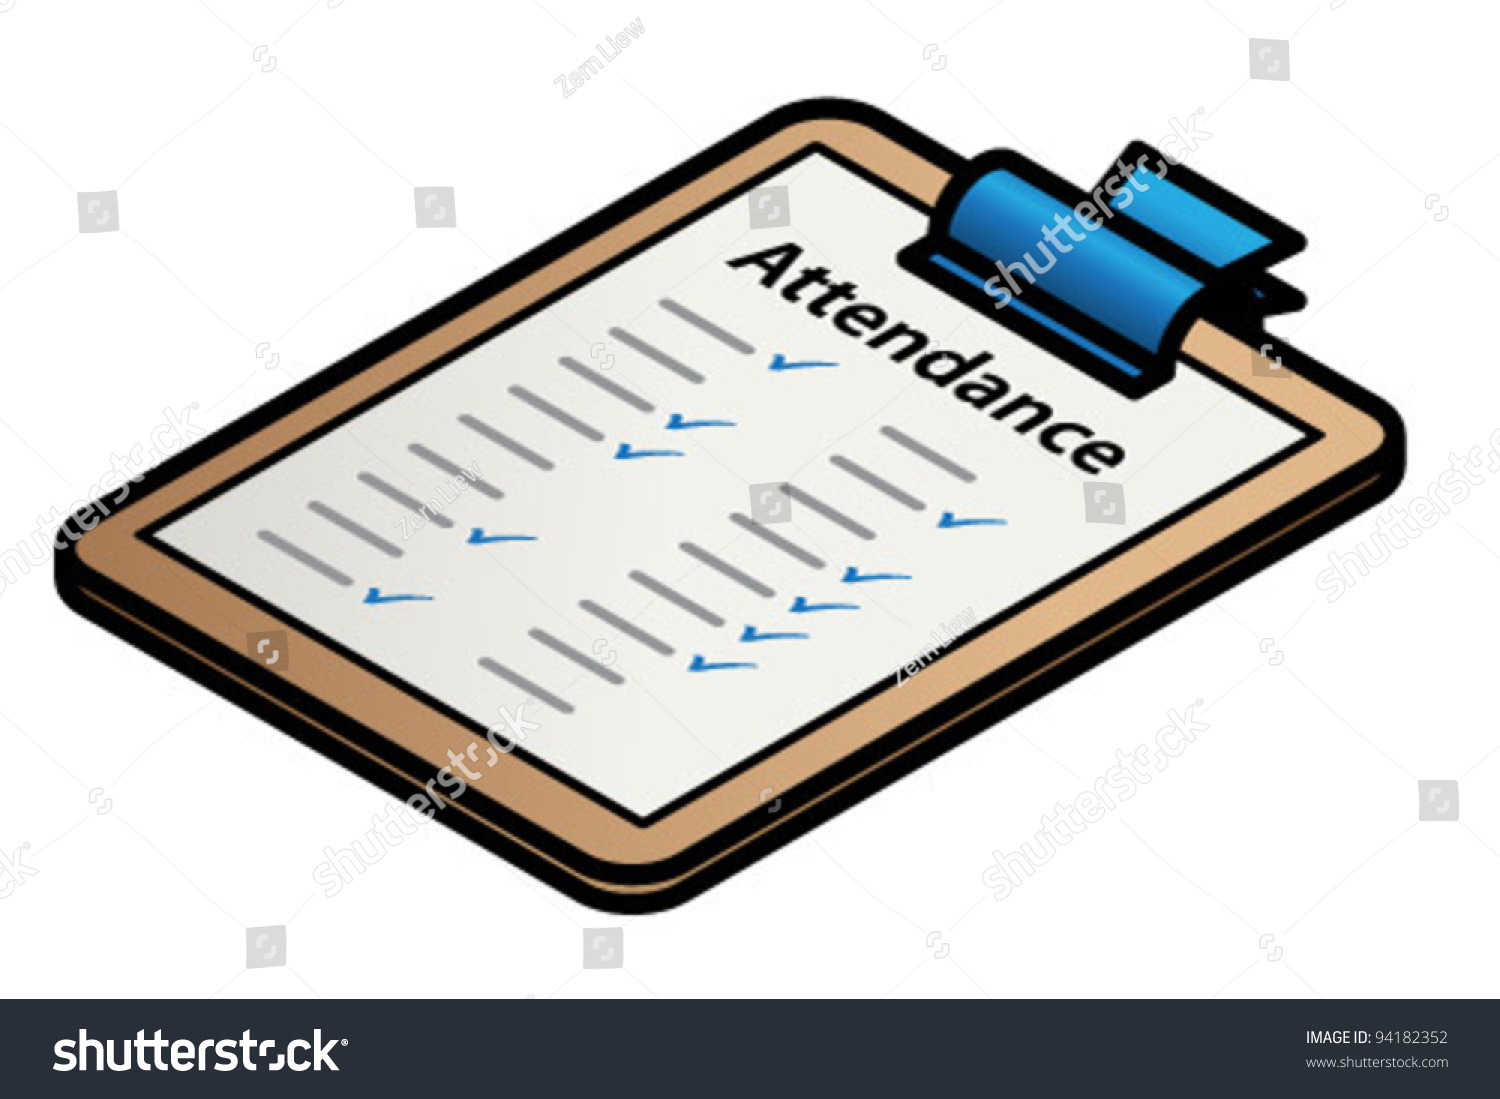 stock vector a clipboard with a form attendance 94182352